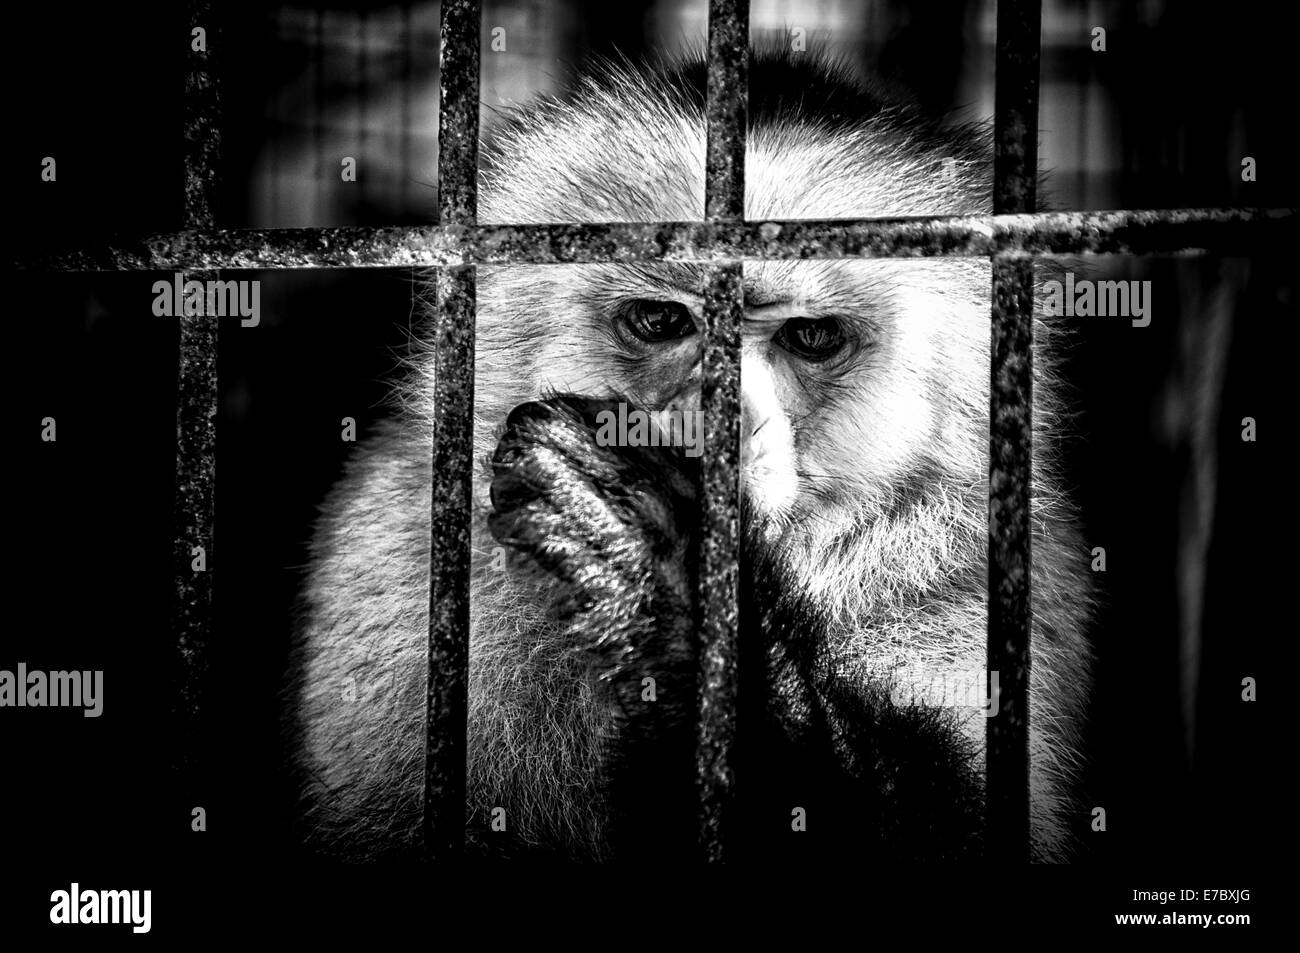 Black and white image of a monkey in a cage sucking its thumb looking at viewer. - Stock Image